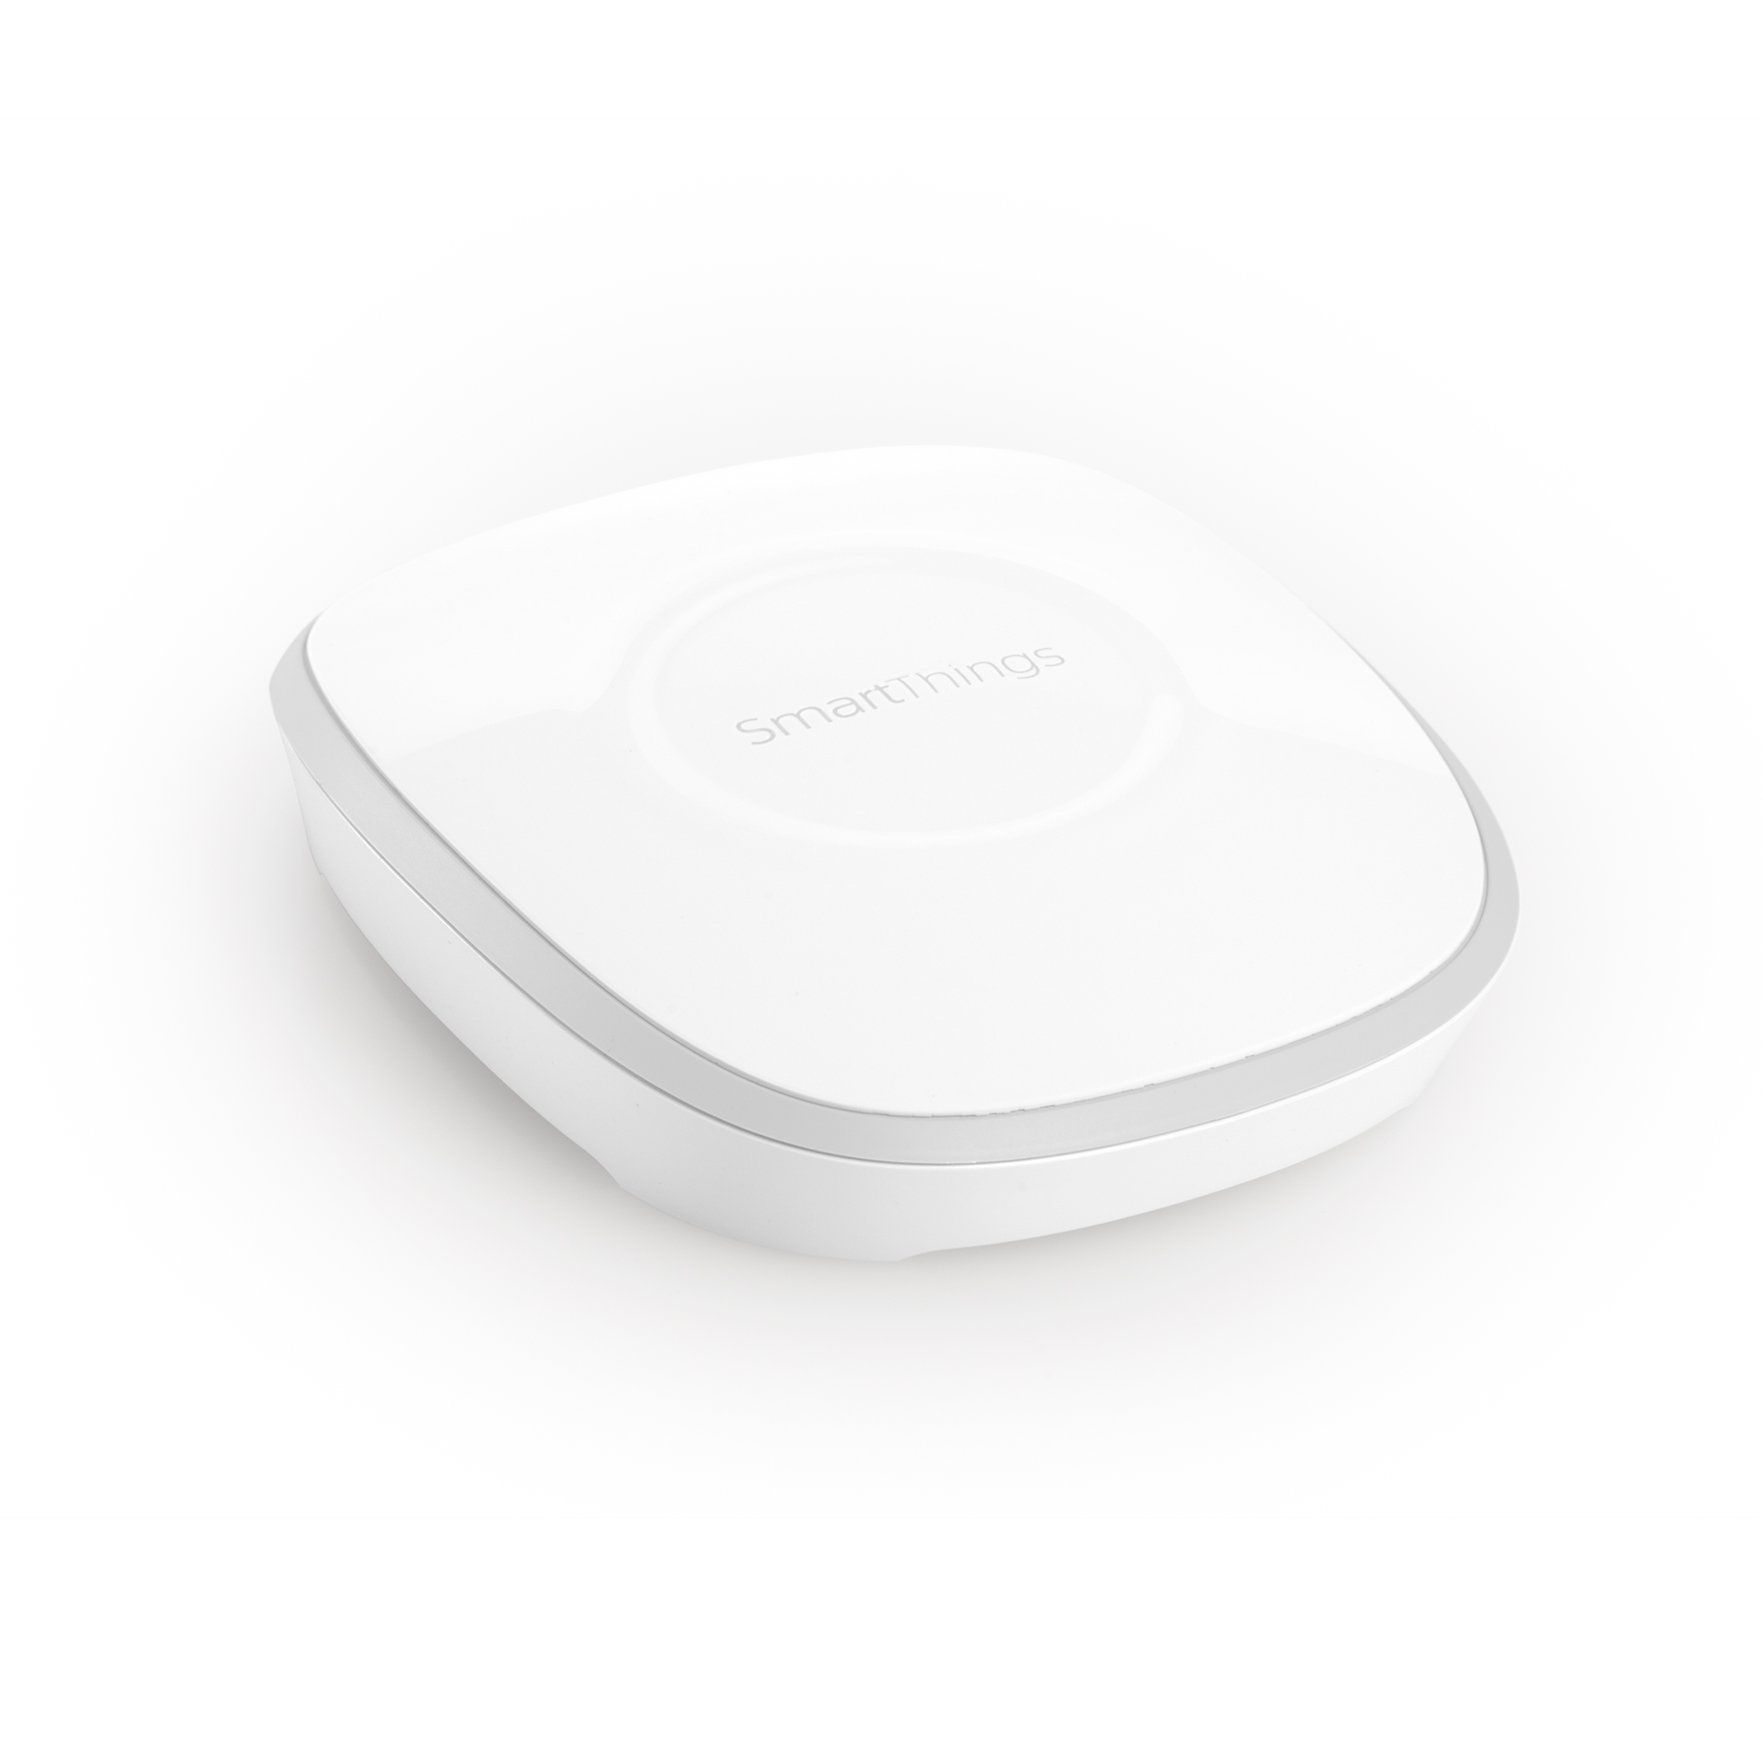 SmartThings Hub - The SmartThings Hub enables you to connect